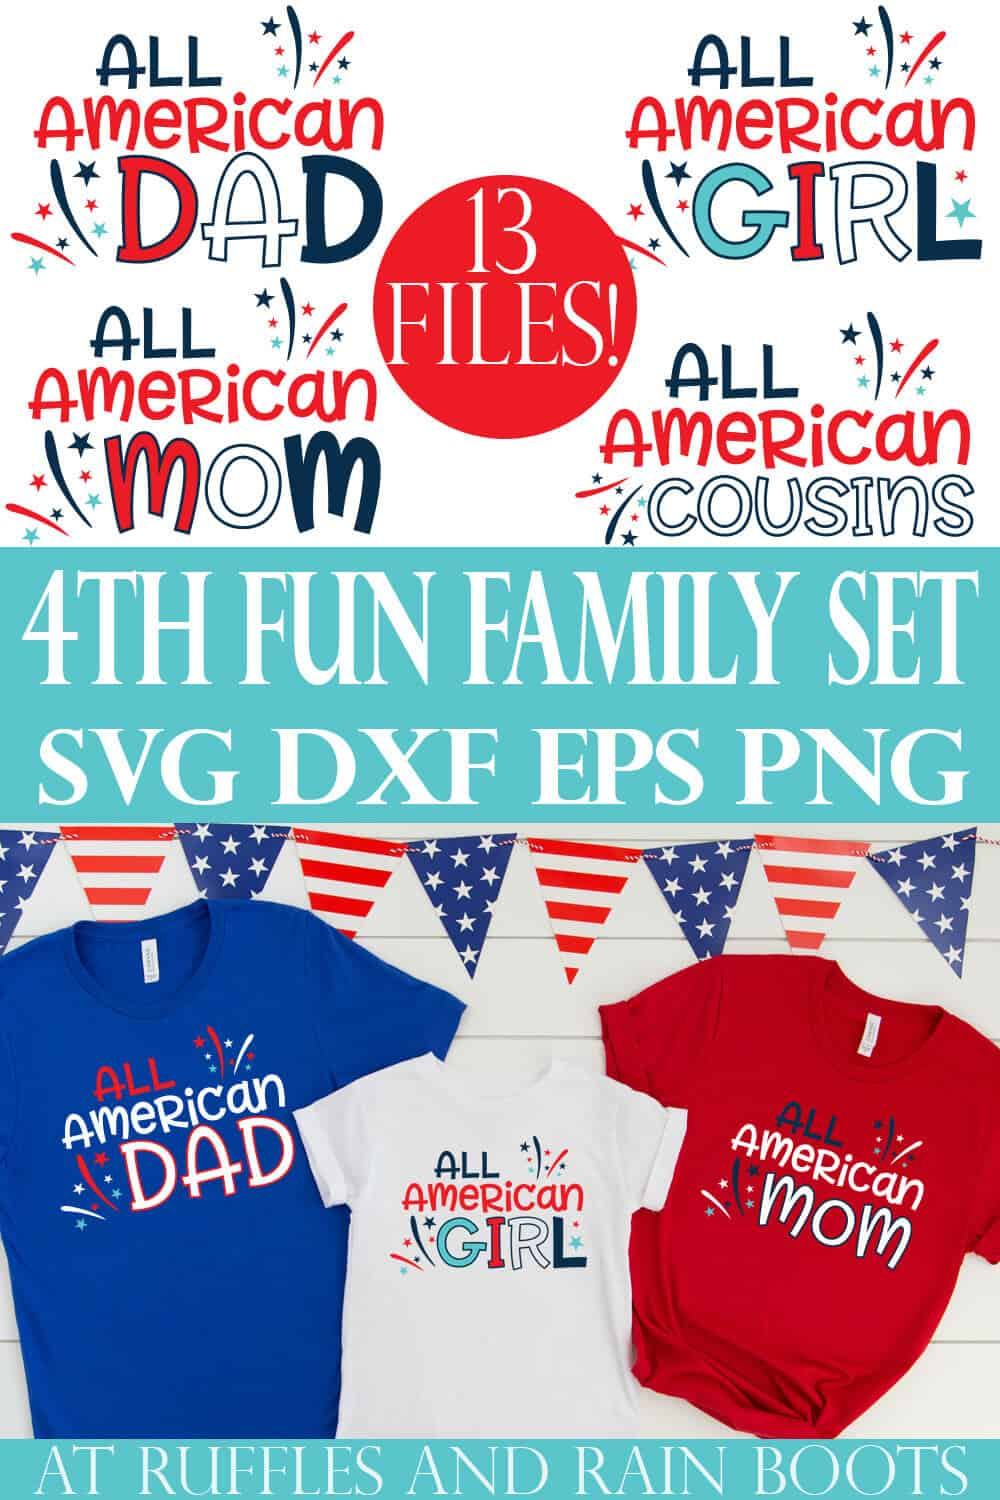 all American svg family set collage with photo of red white and blue t shirts made with Cricut vinyl on a white wood background with flag banner